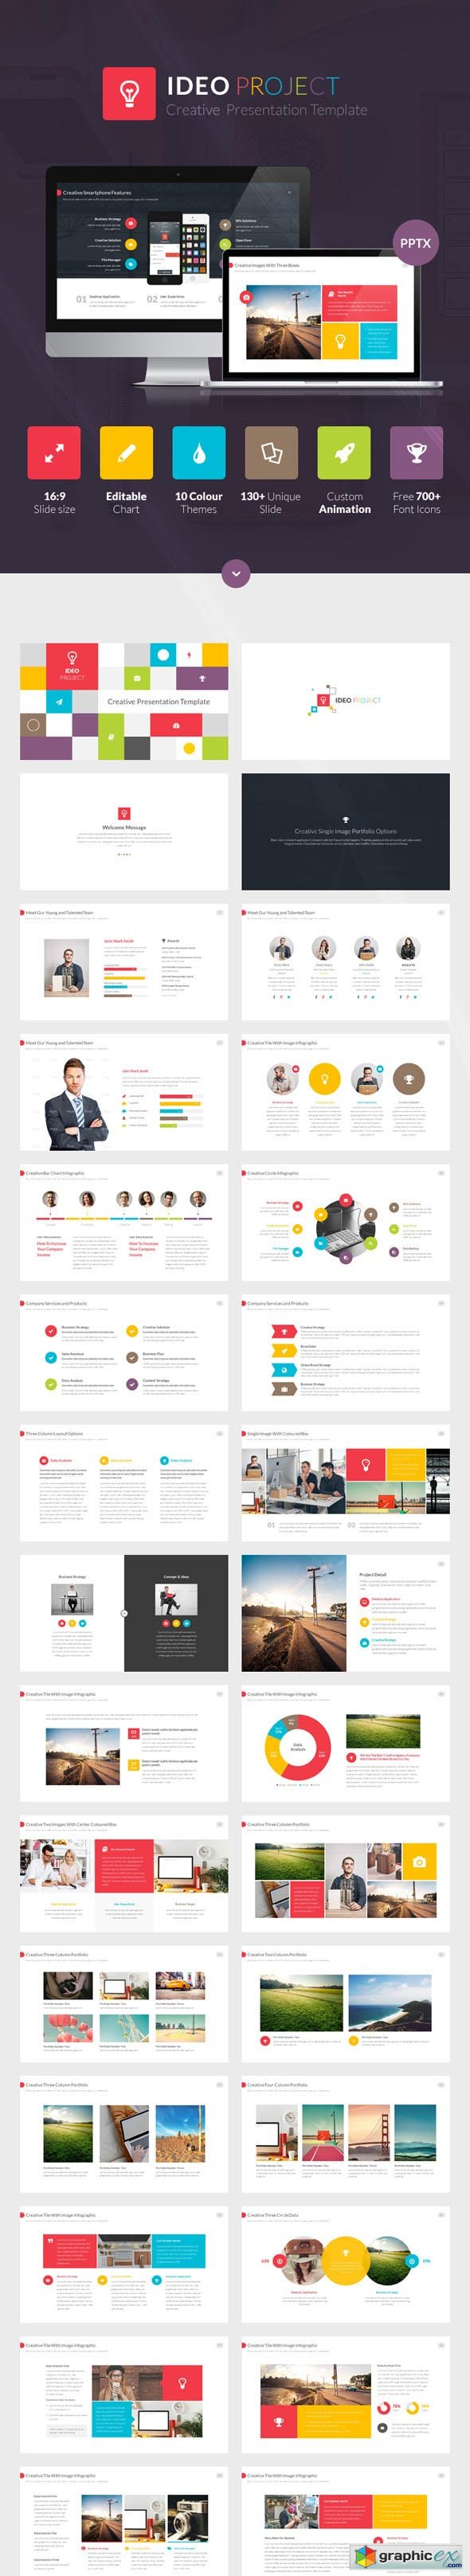 ideo powerpoint presentation template » free download vector stock, Presentation templates